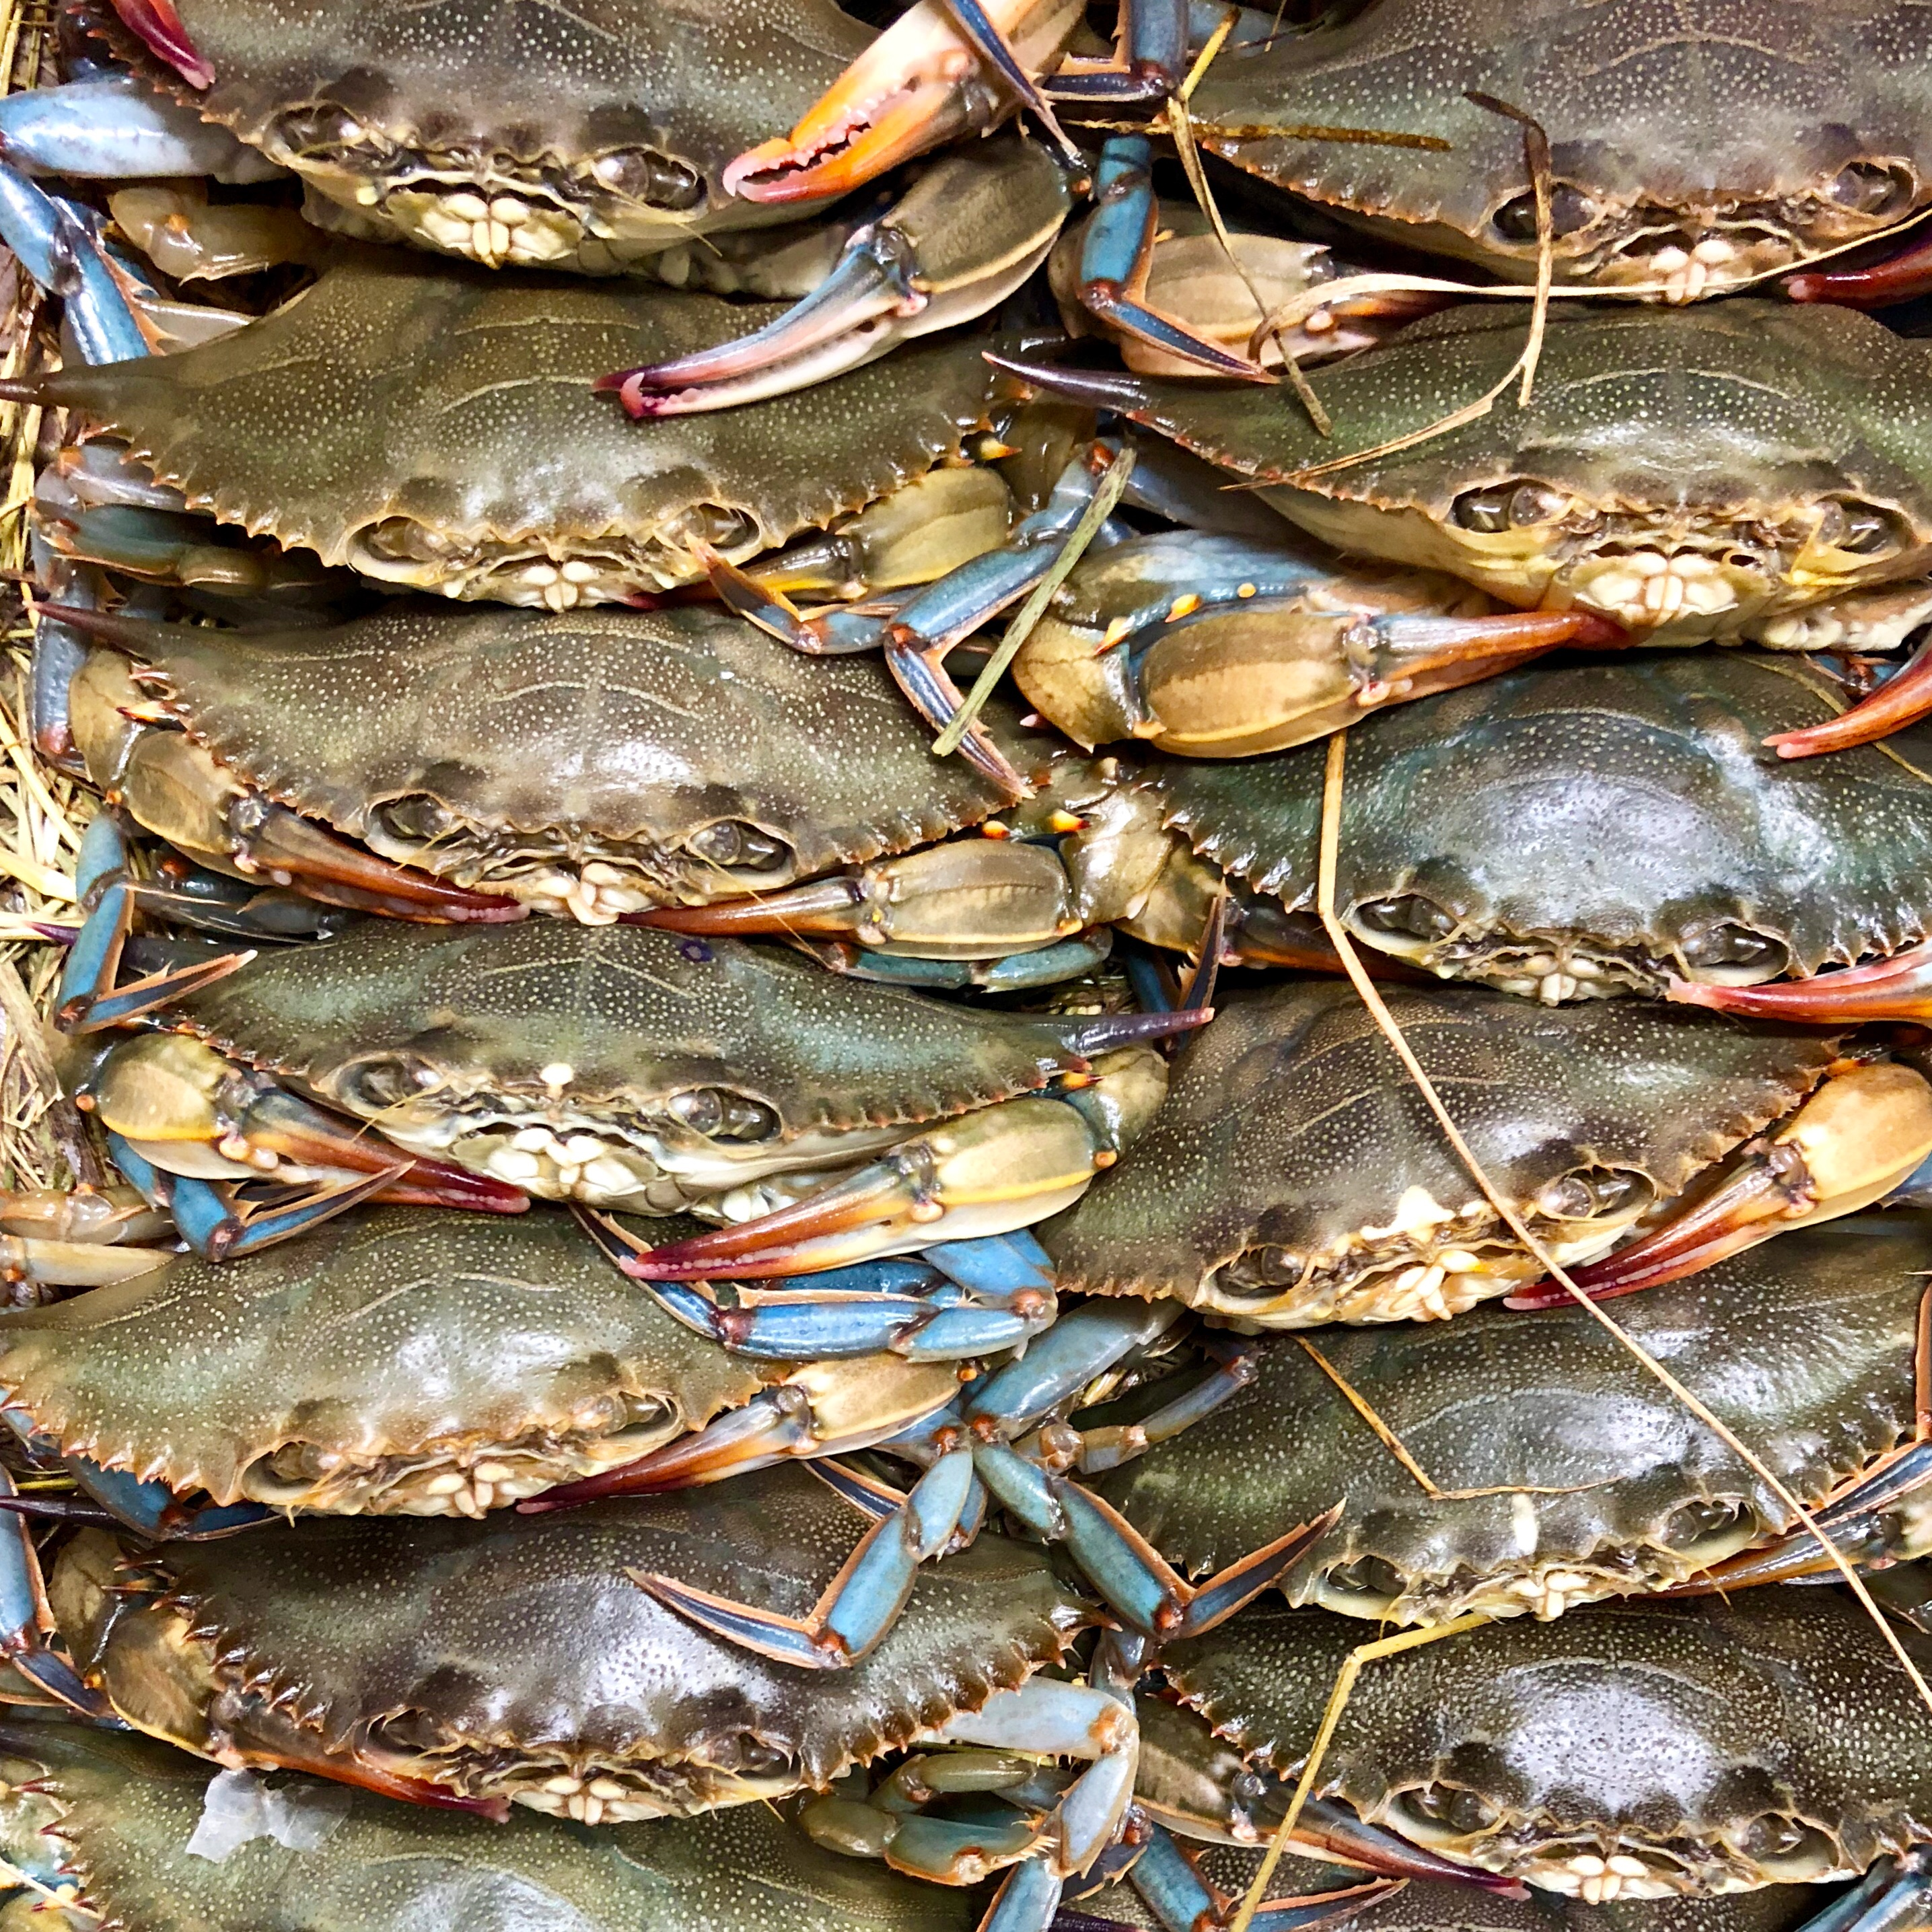 Soft Shell Crabs Spotted In Savannah at the Grey Market